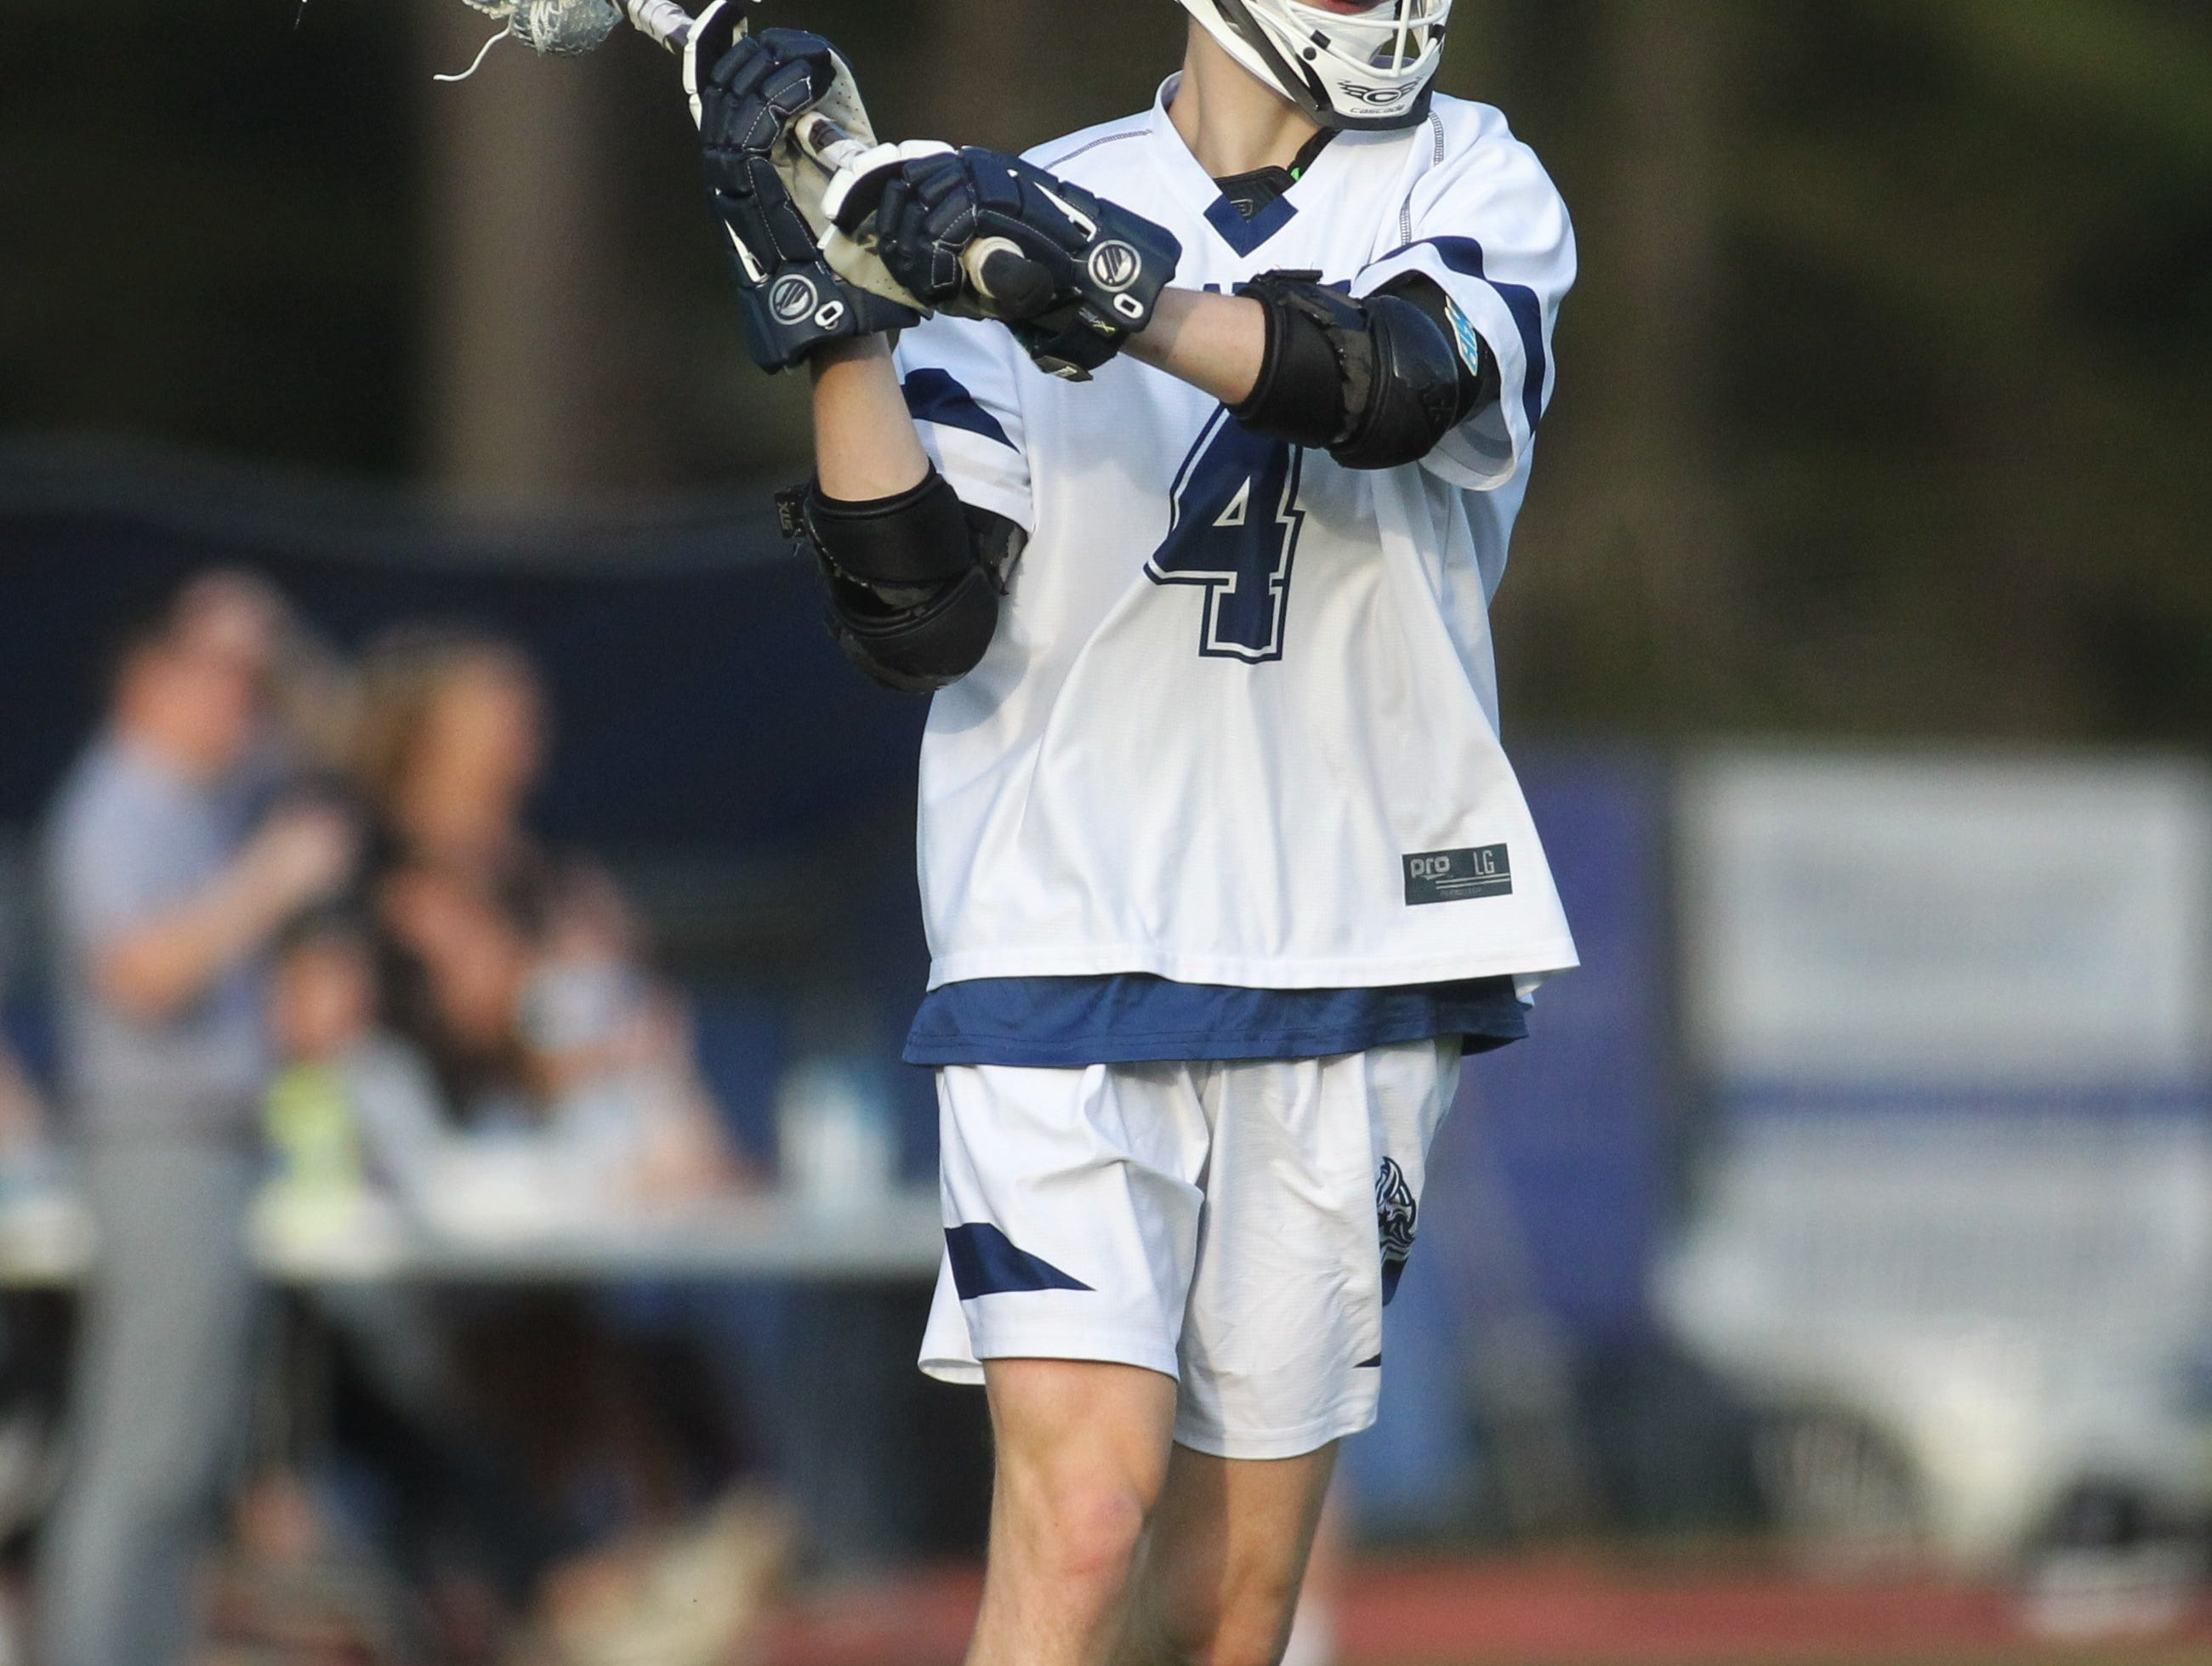 Maclay sophomore Stone Foster looks for a pass as the Marauders' lacrosse team beat Leon 15-5 on their annual Military Appreciation Night on March 12, 2019.